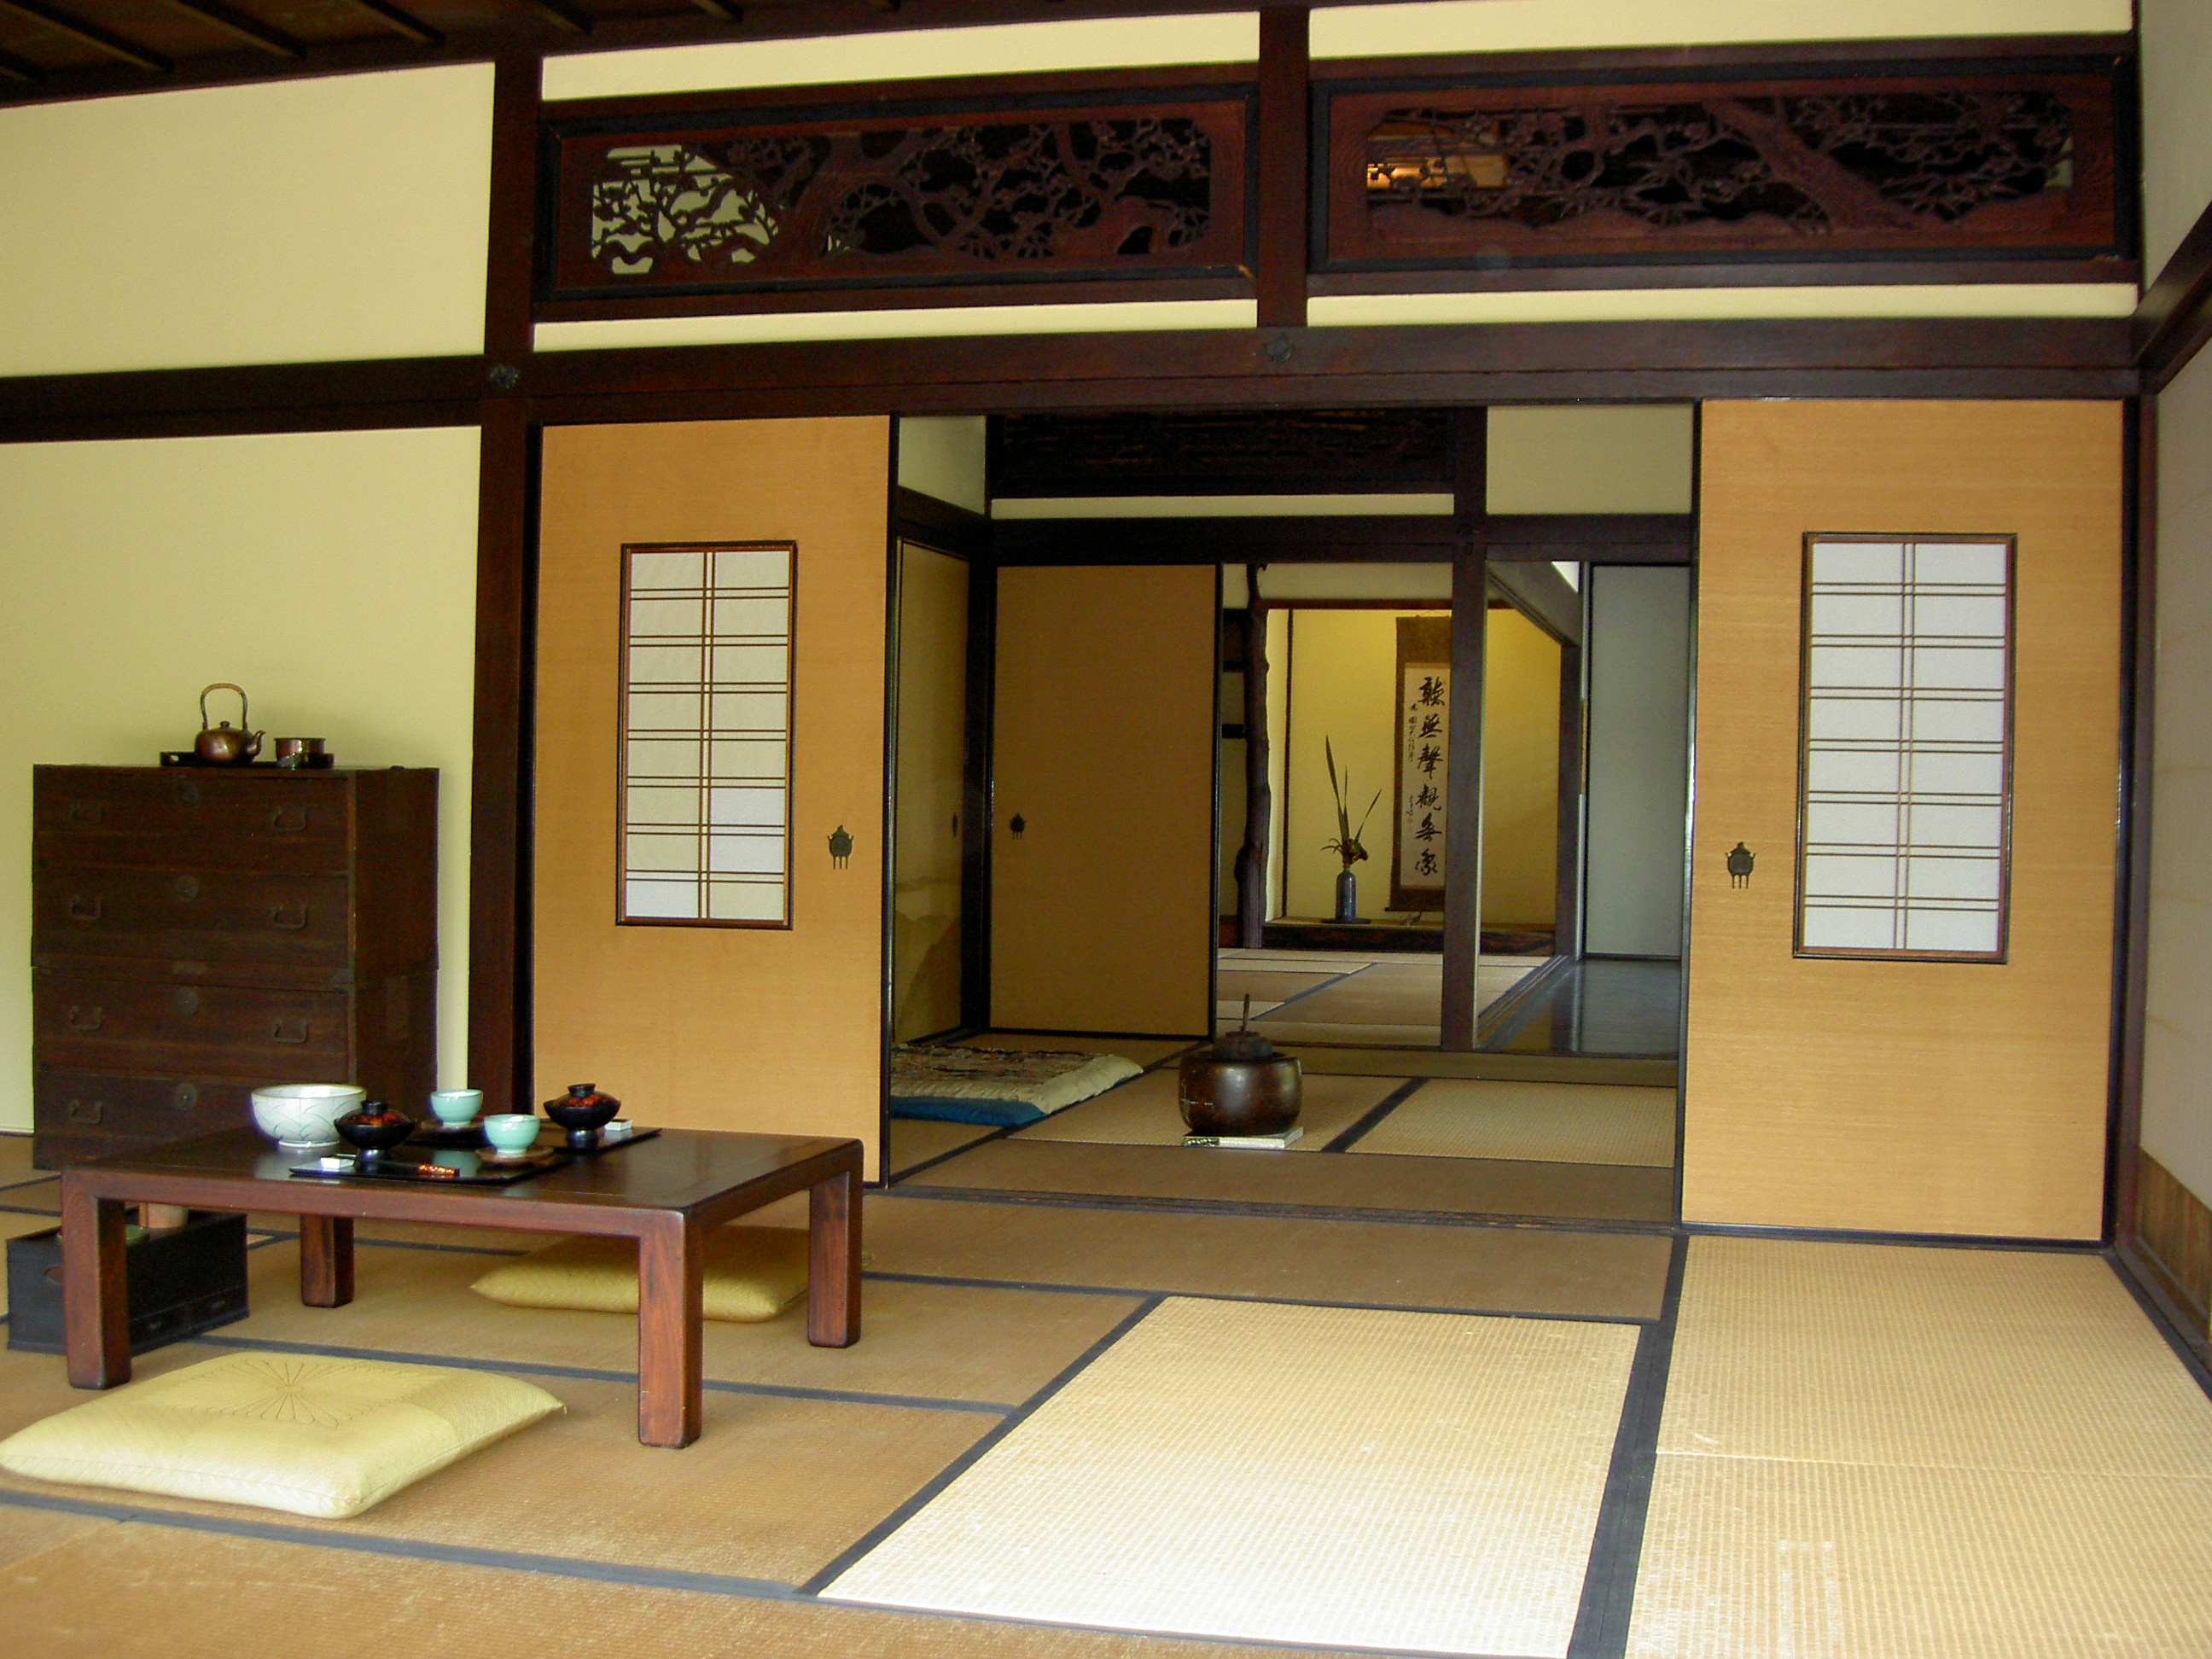 Traditional Japanese Architectures That Give You Peaceful Living Space: Interior Architecture In Japanese Minimalism